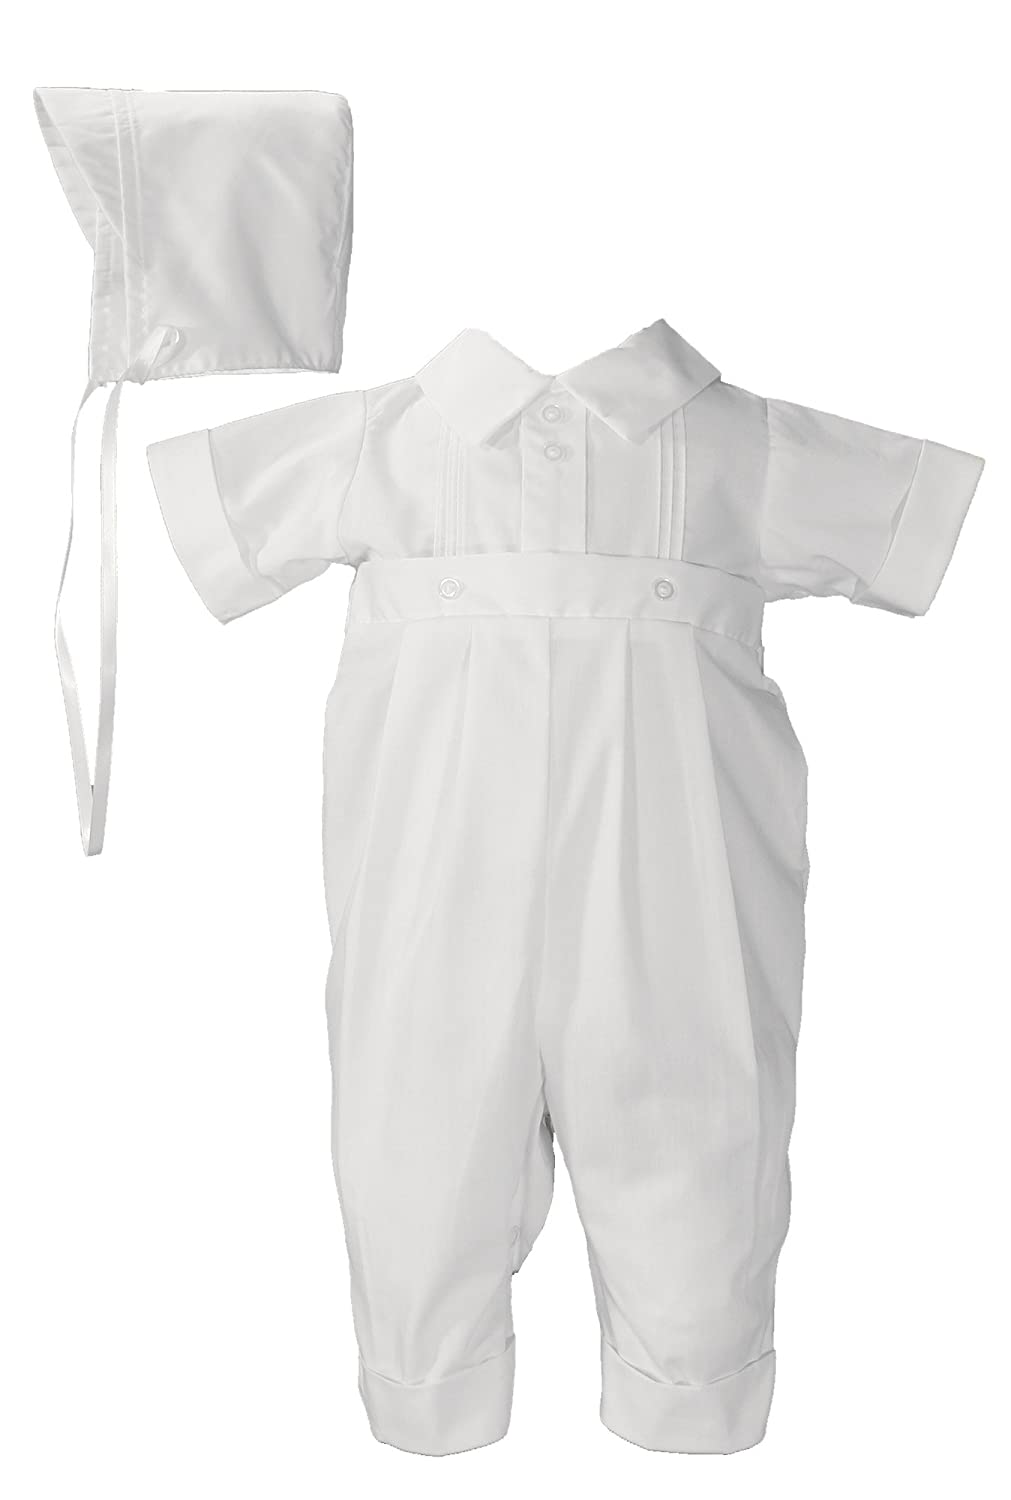 Little Things Mean A Lot Polycotton One Piece with Pin Tucking